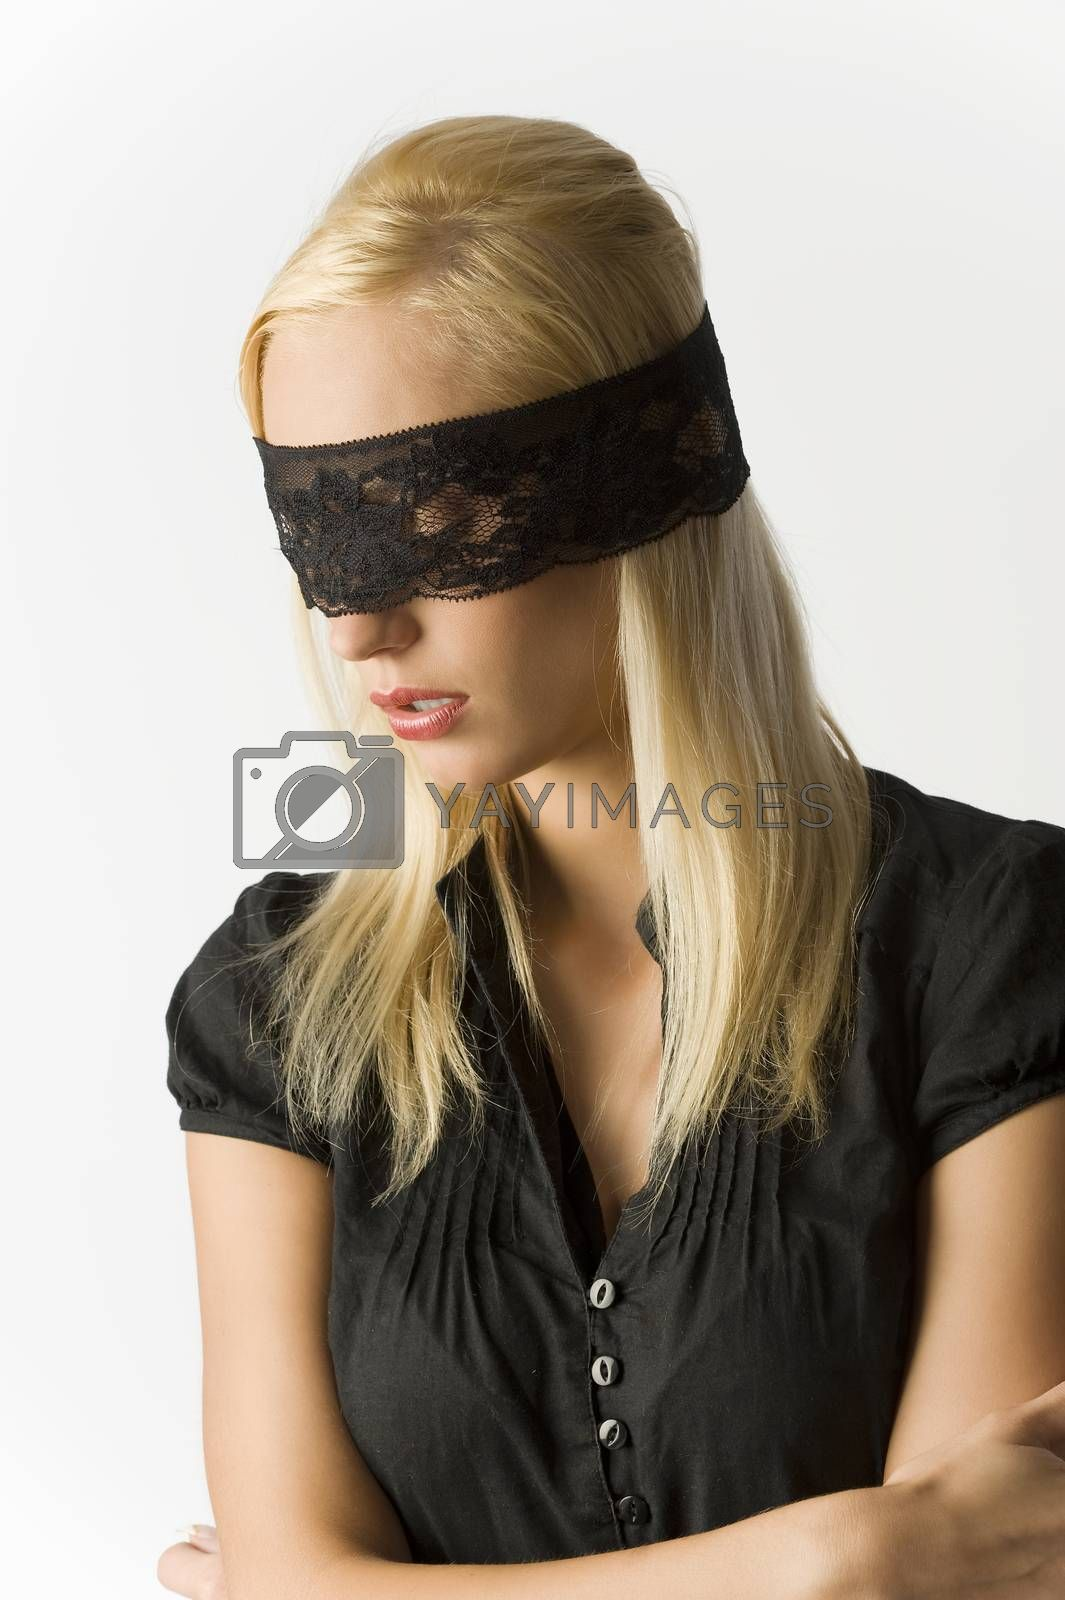 Royalty free image of the blond with lace on eyes by fotoCD